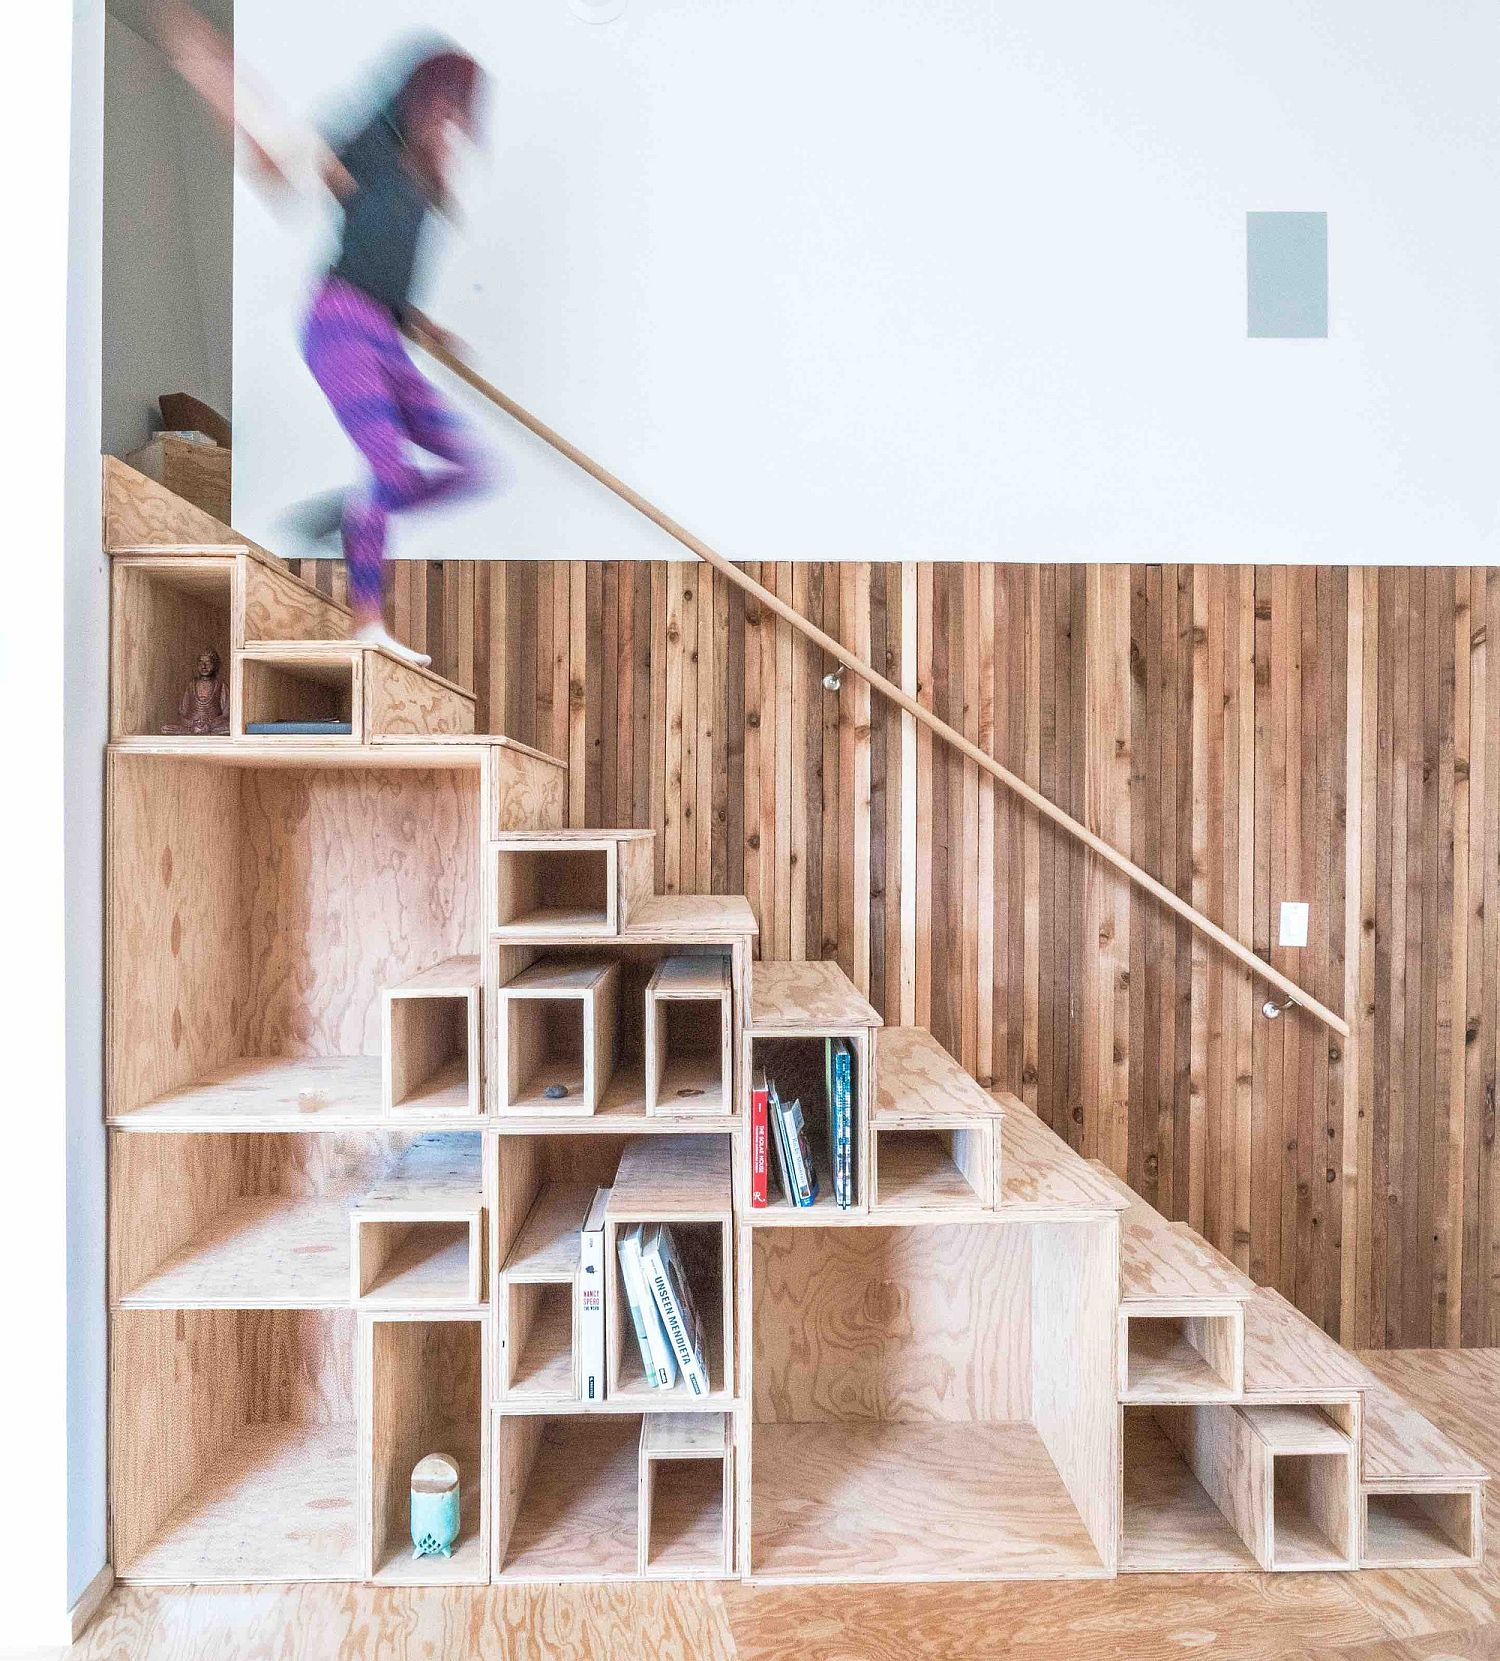 Space-savvy staircase design with built-in shelving